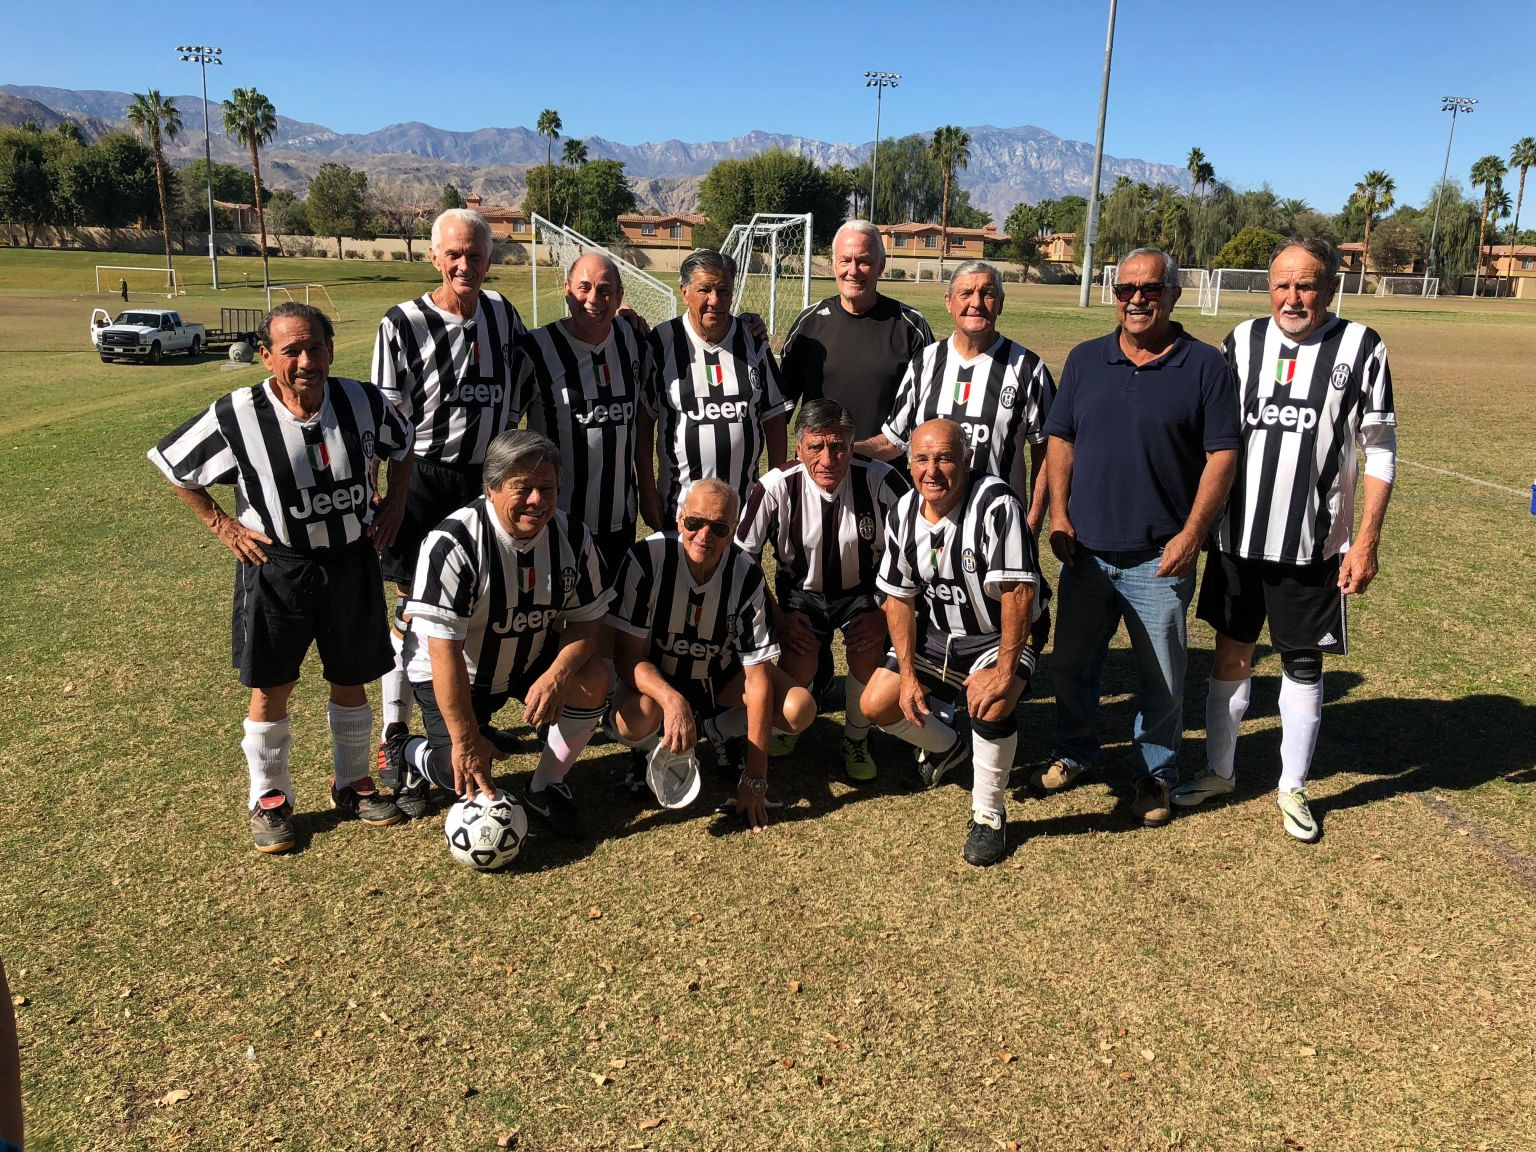 18th Annual Senior Games Are Underway In The Valley